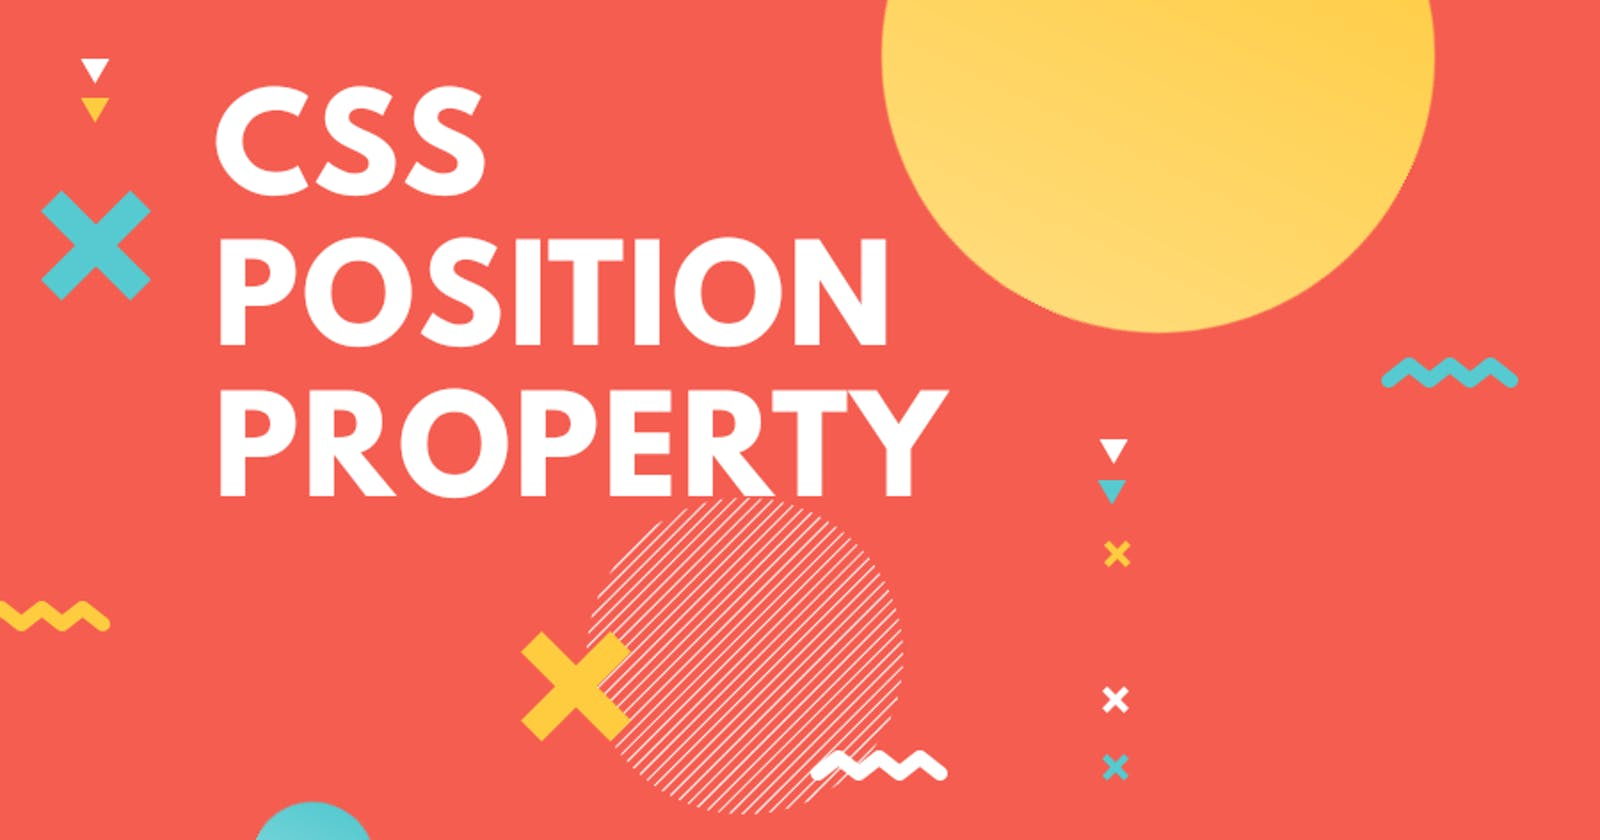 Understanding The CSS Position Property